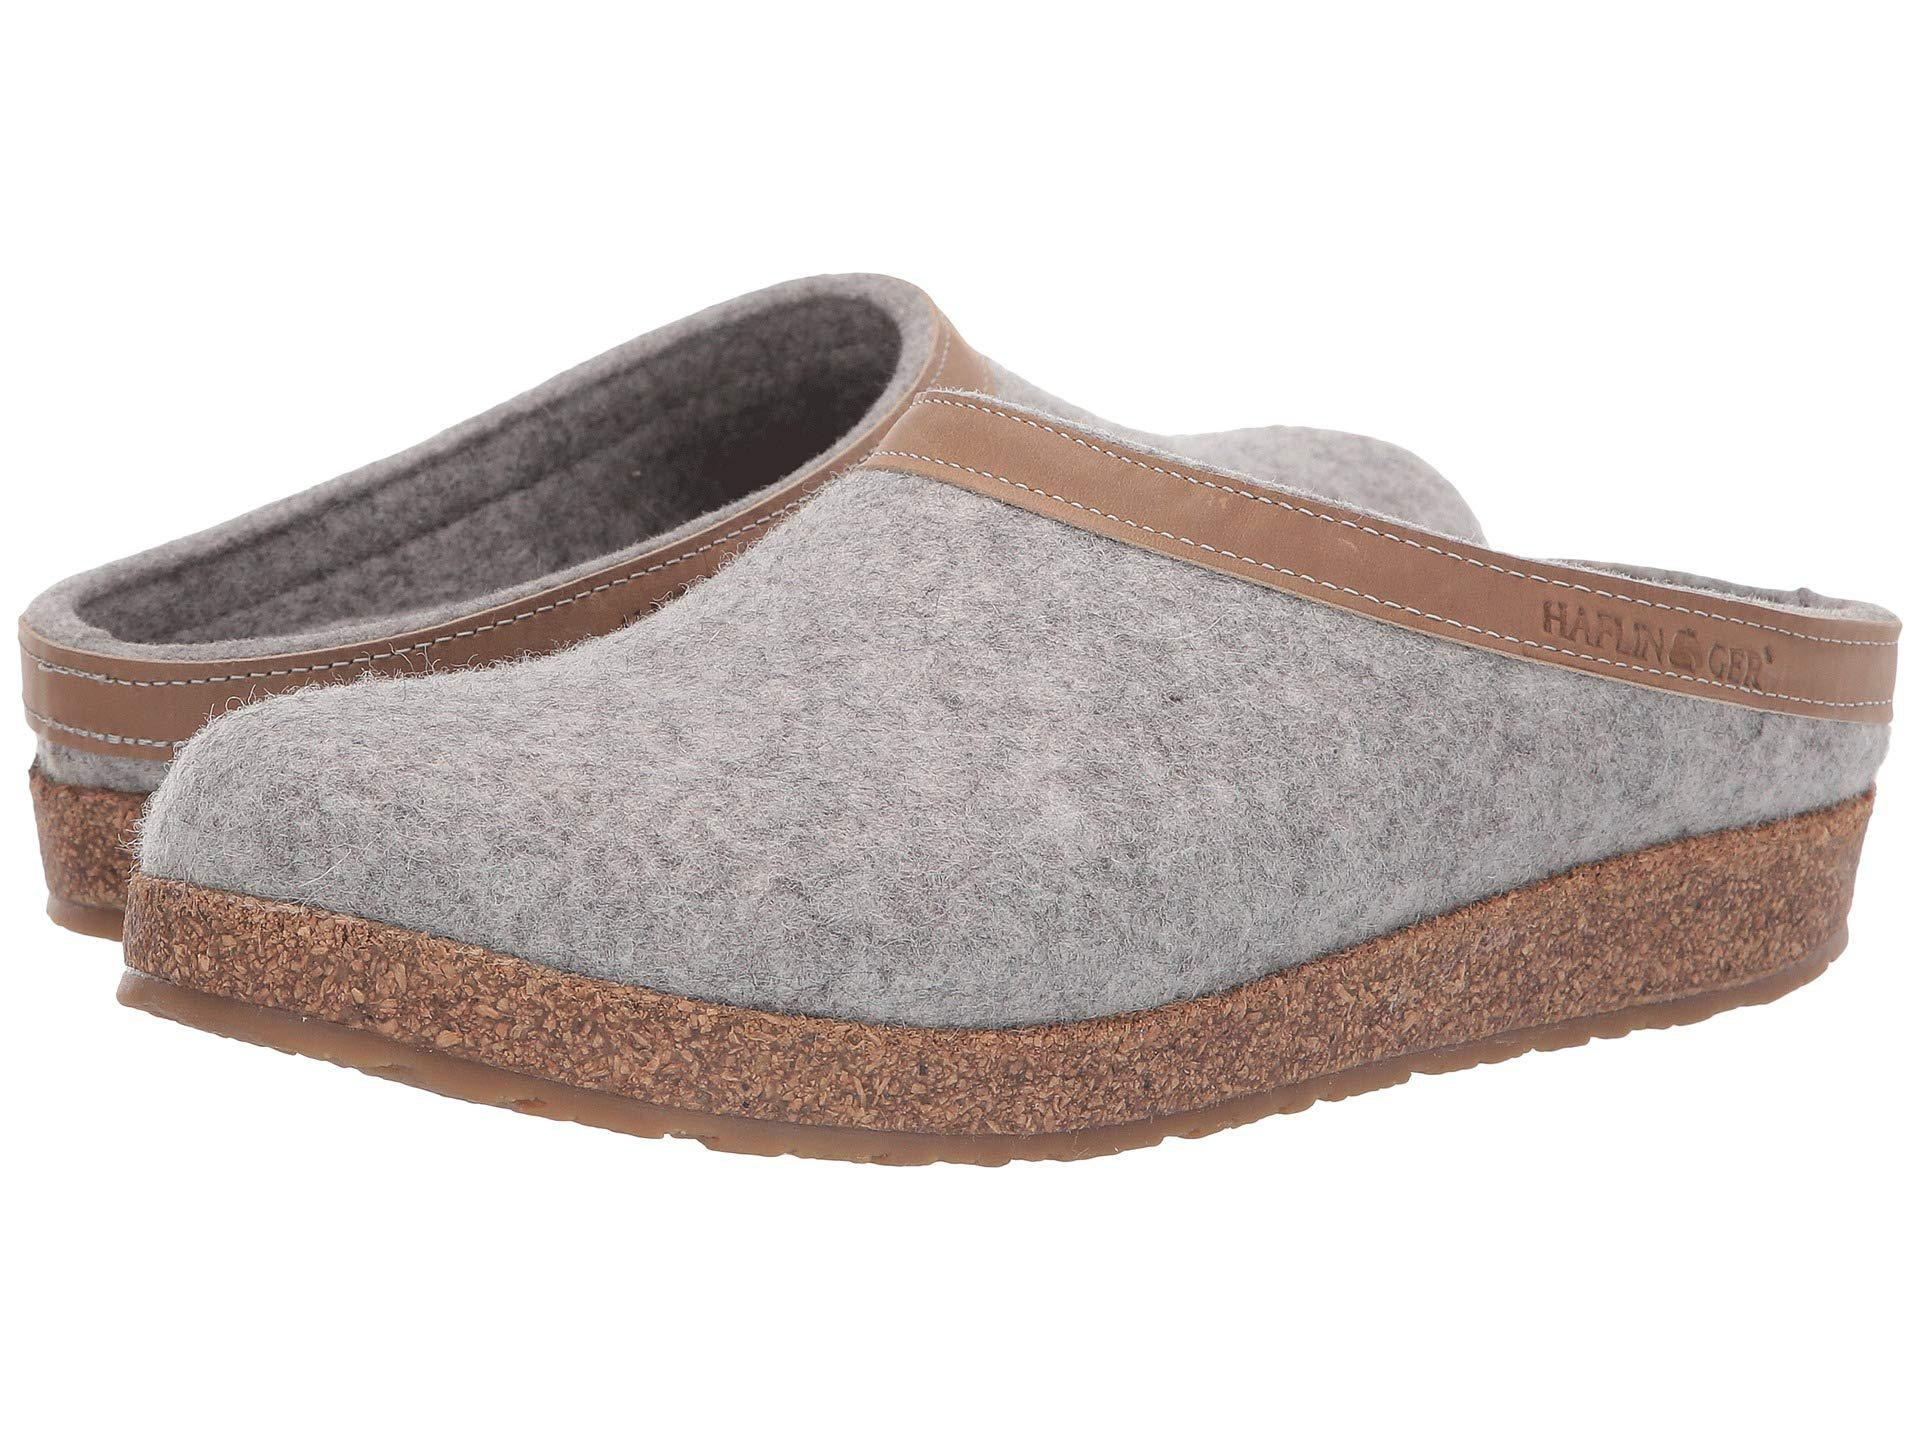 811803f3470 Lyst - Haflinger Gzl Leather Trim Grizzly (charcoal) Clog Shoes in Gray